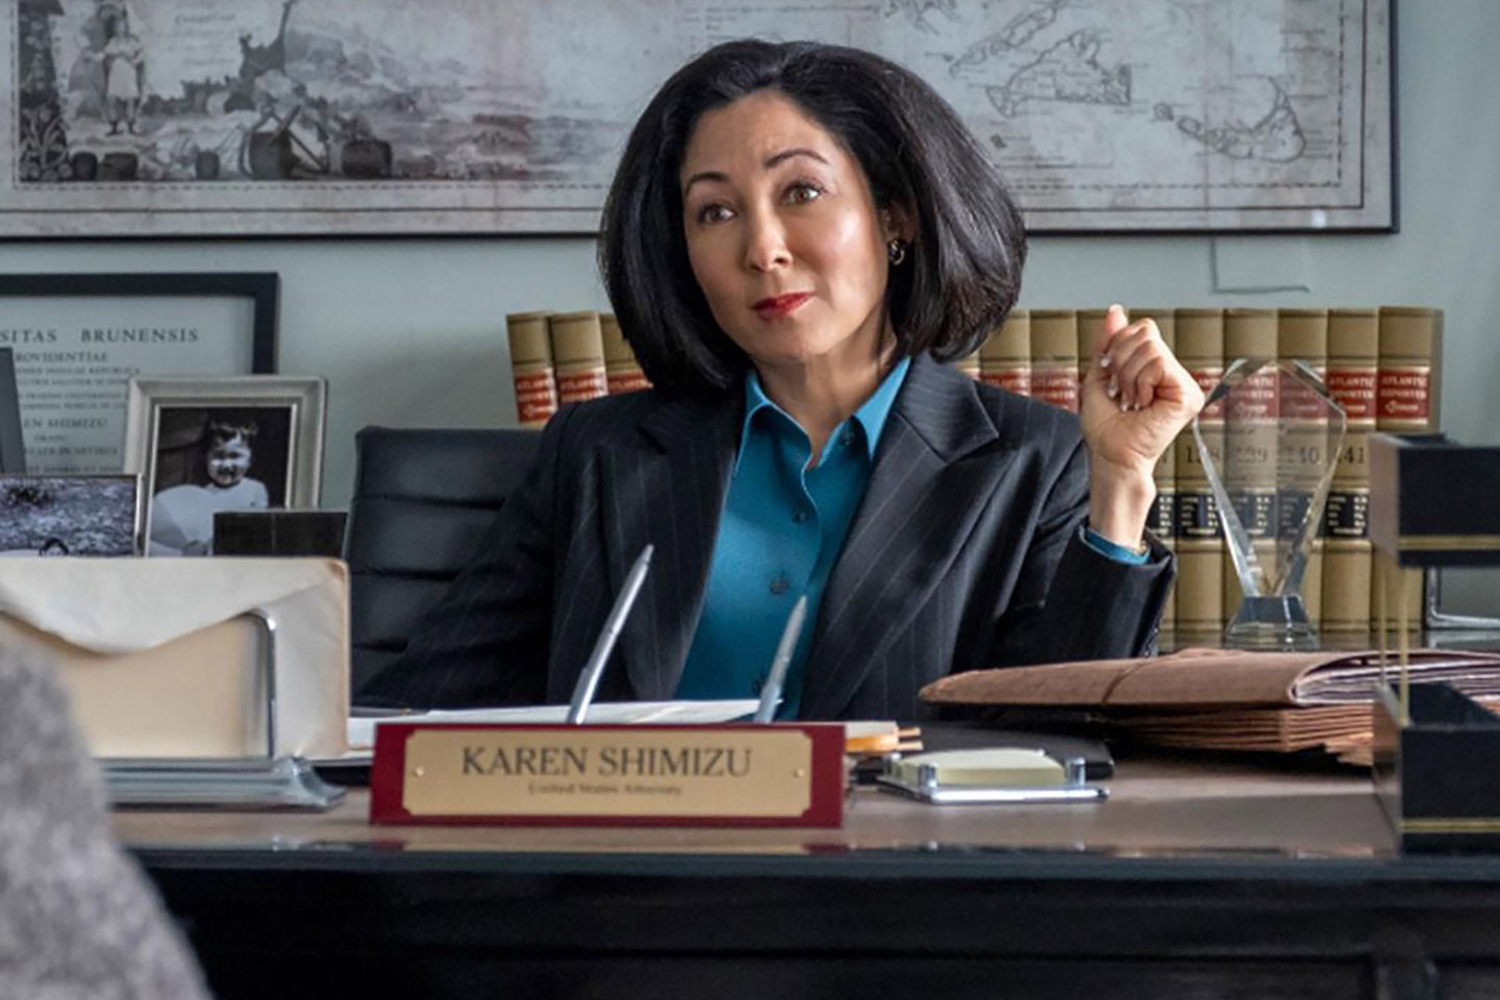 Keiko Elizabeth for Voices for Change